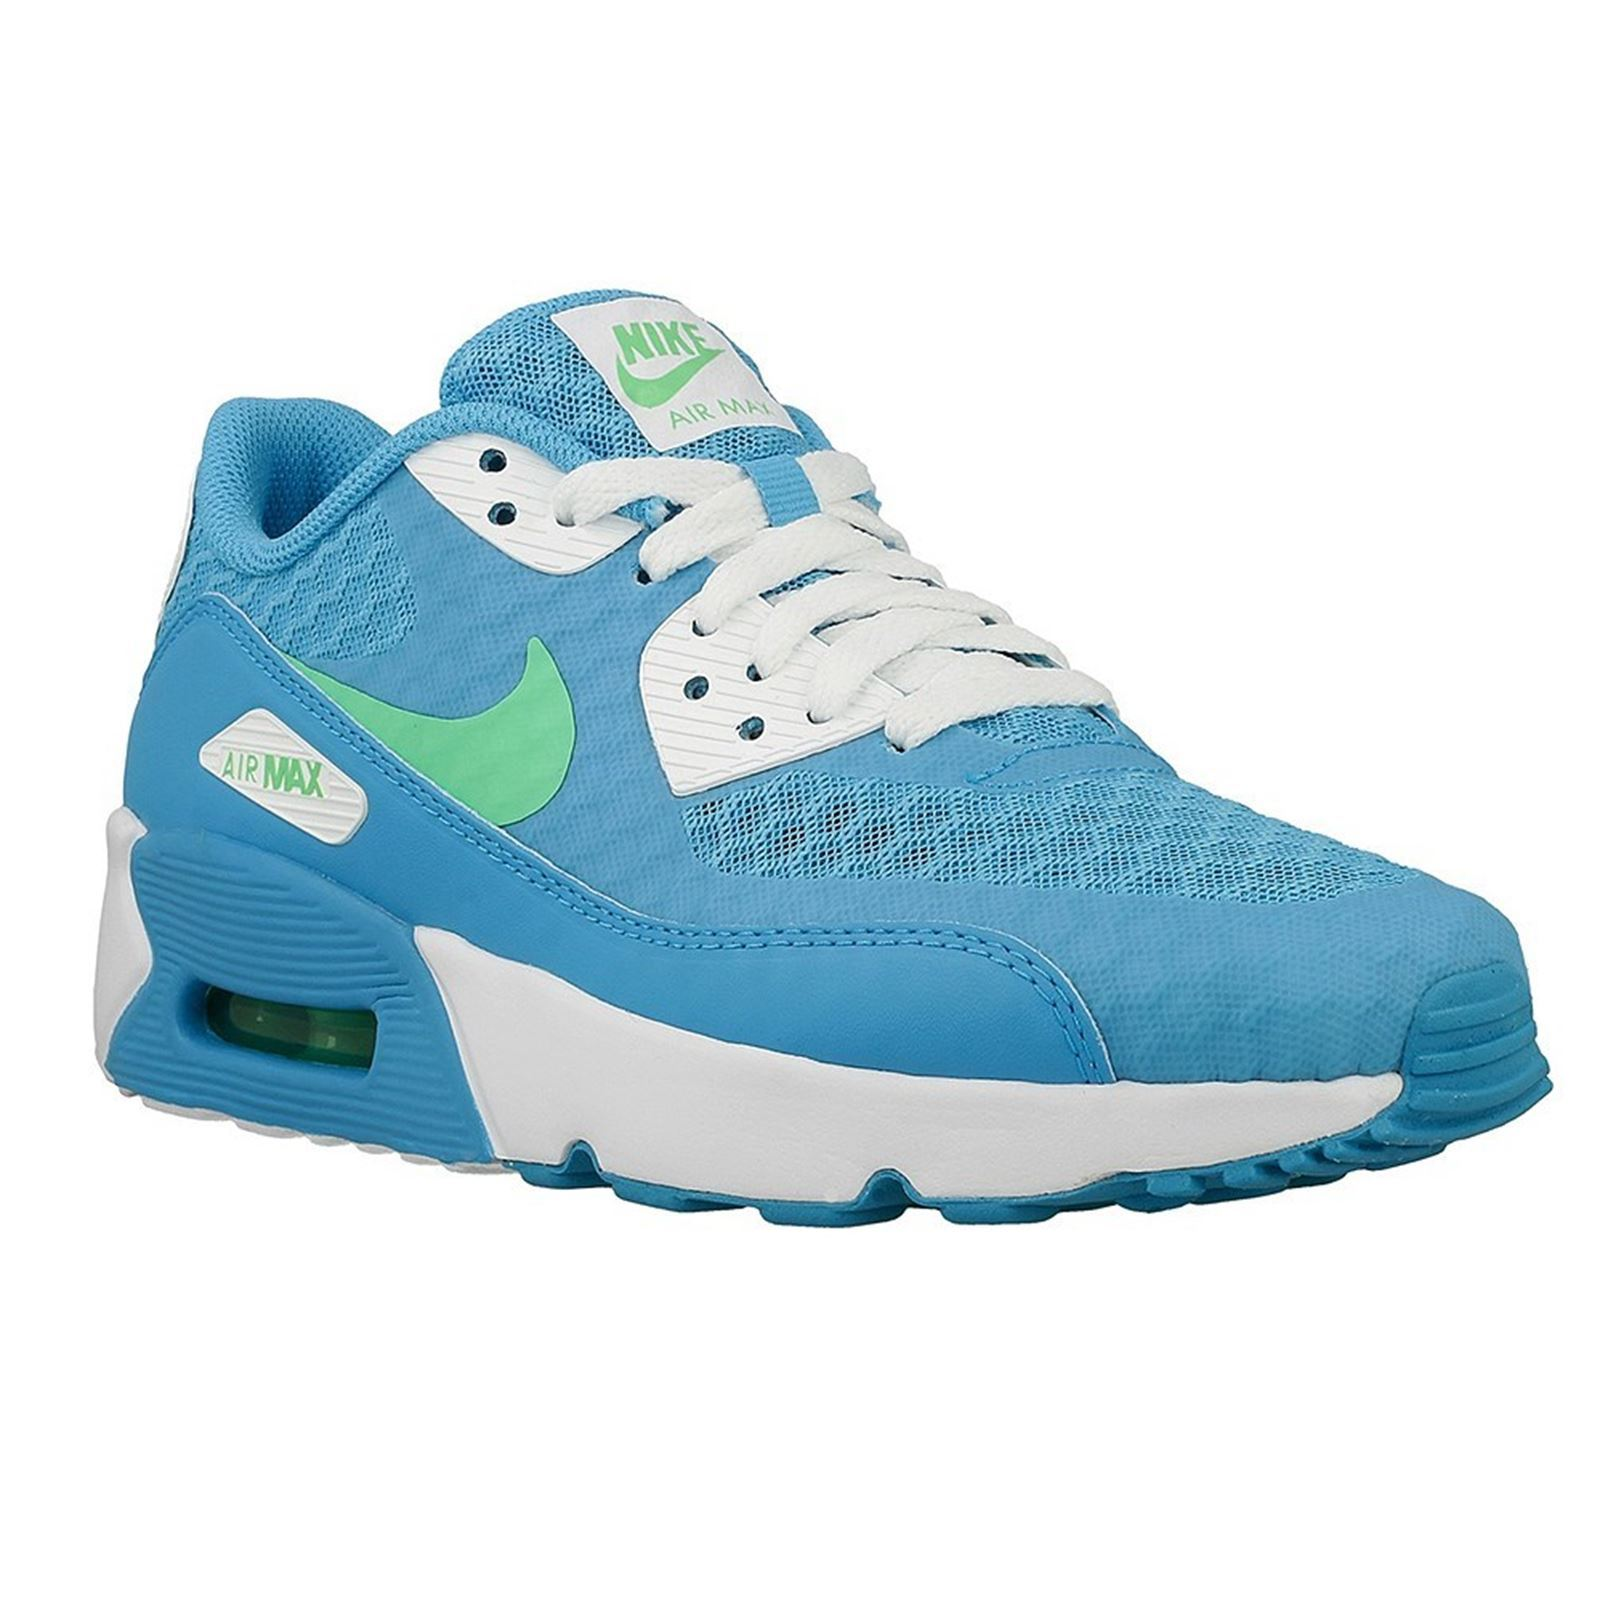 acheter populaire 0db68 37c03 Nike air max 90 ultra 20 br - Baskets montantes - multicolore